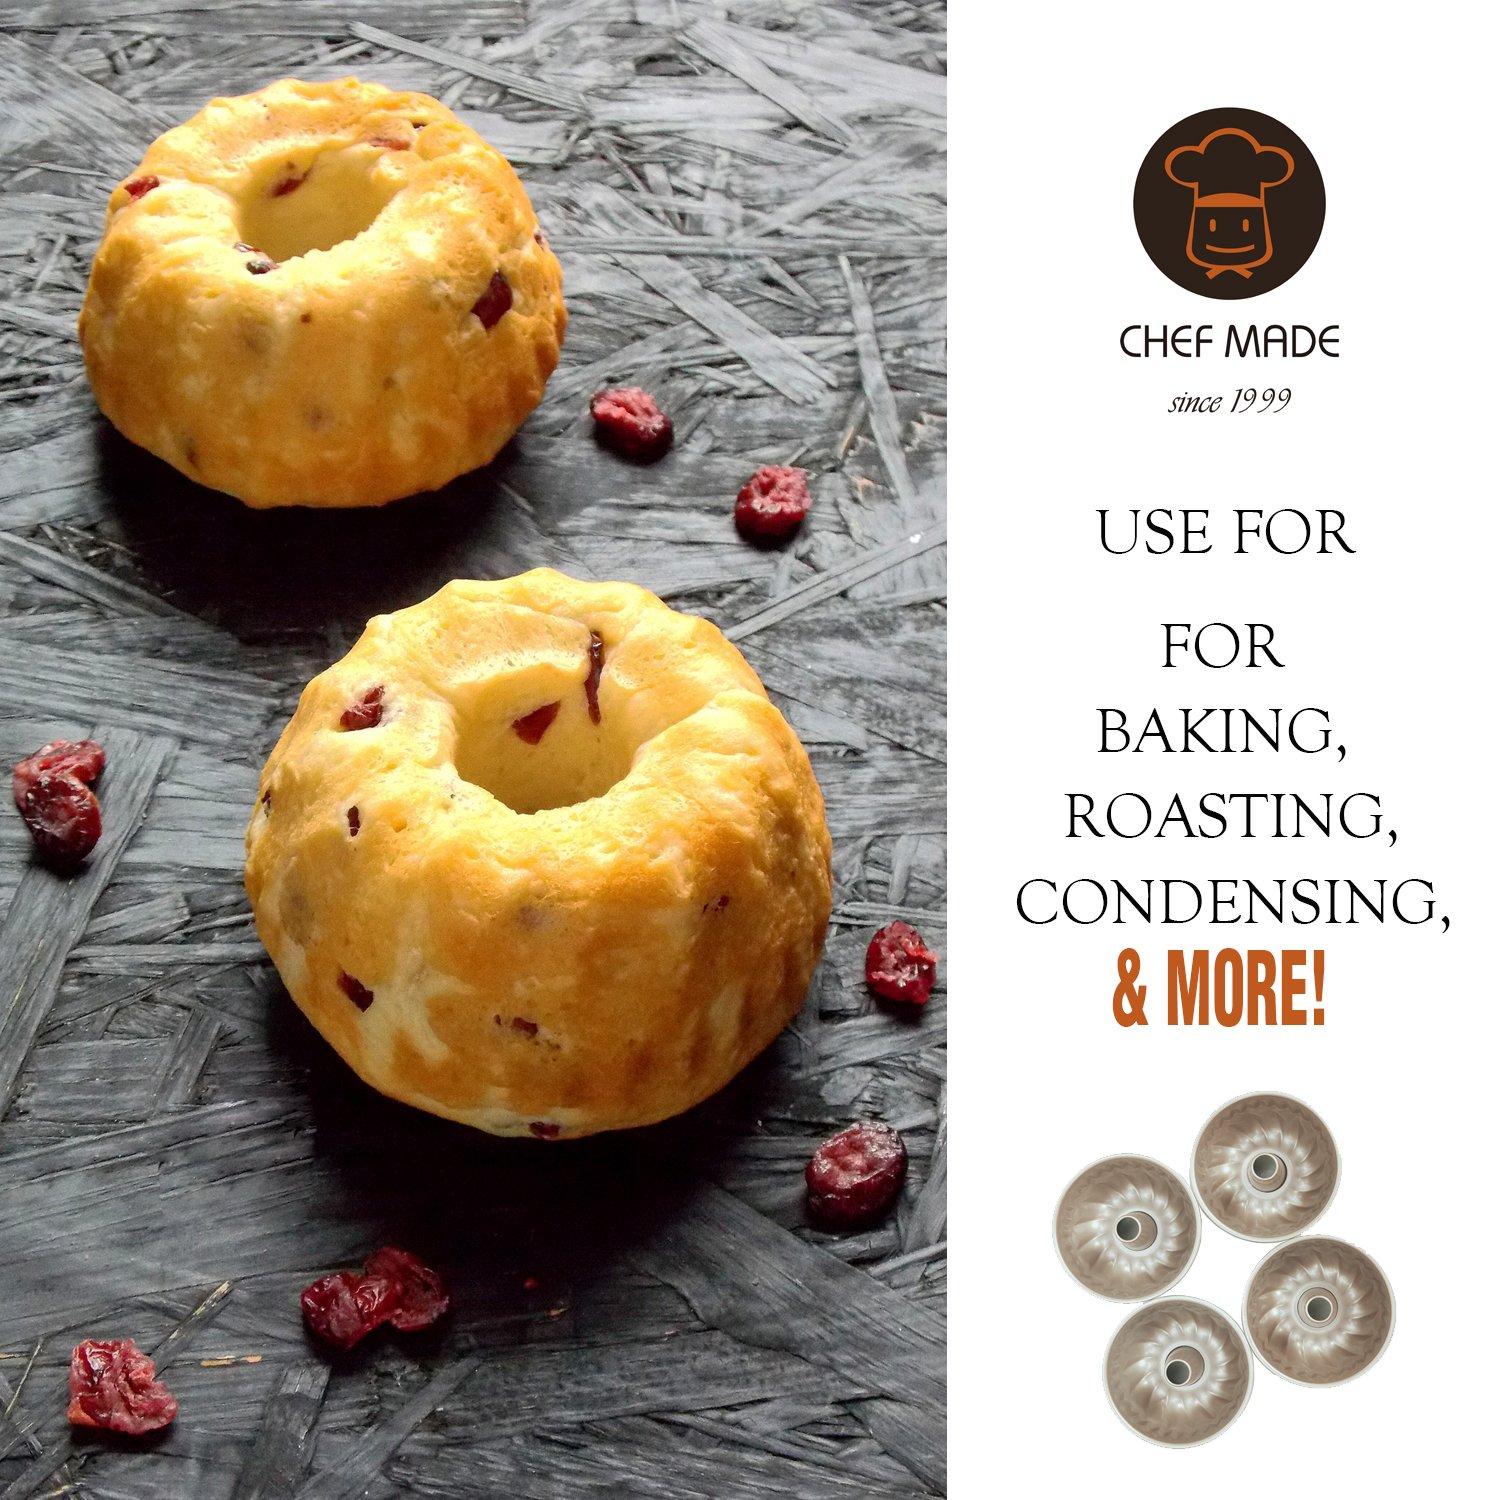 CHEFMADE 4PCS Mini Bundt Pan Set, 4-Inch Non-stick Carbon Steel Kugelhopf Mold, FDA Approved for Oven and Instant Pot Baking (Champagne Gold) by CHEFMADE (Image #4)